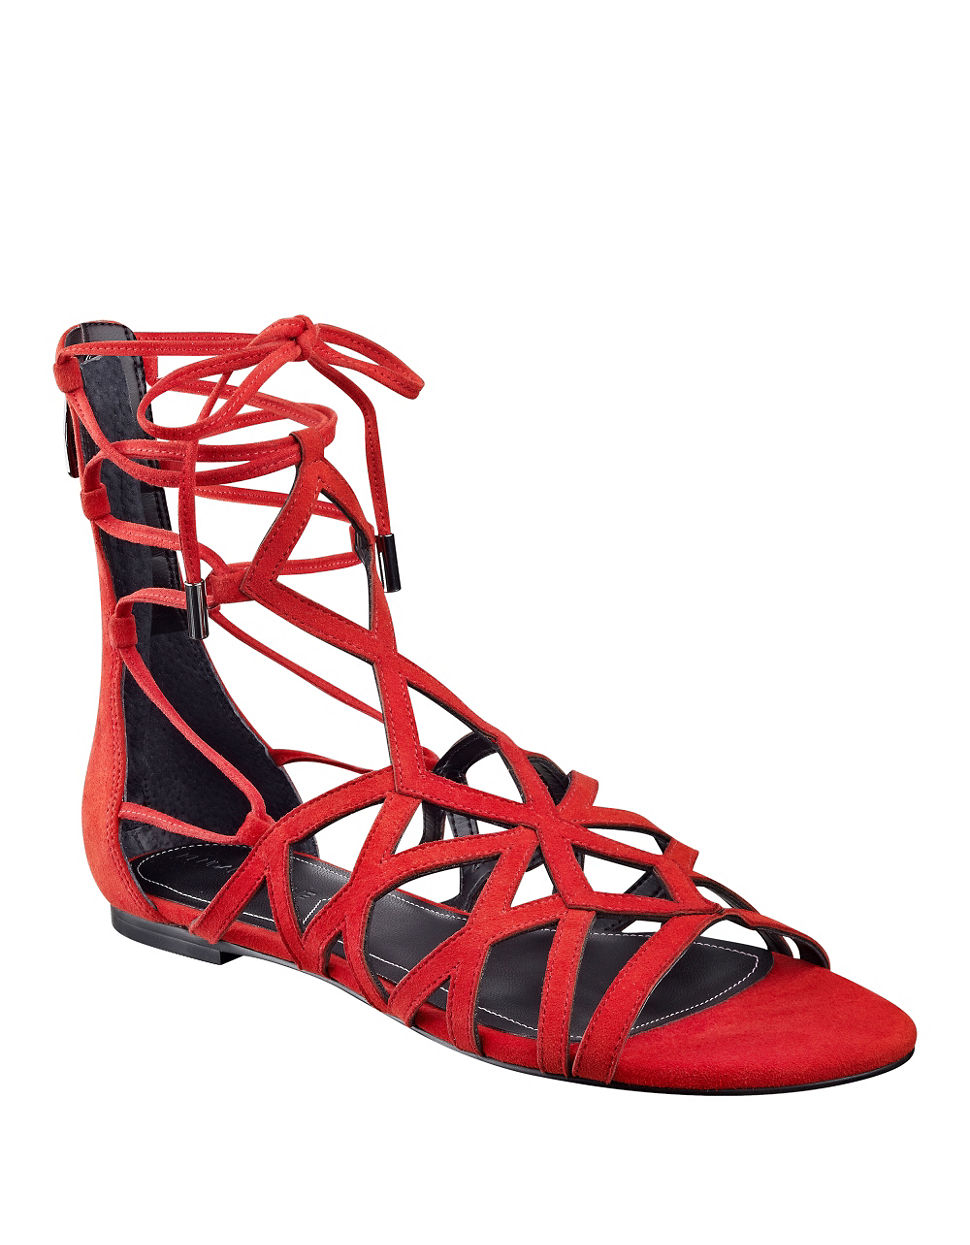 Kendall Kylie Cody Suede Gladiator Sandals In Red Lyst